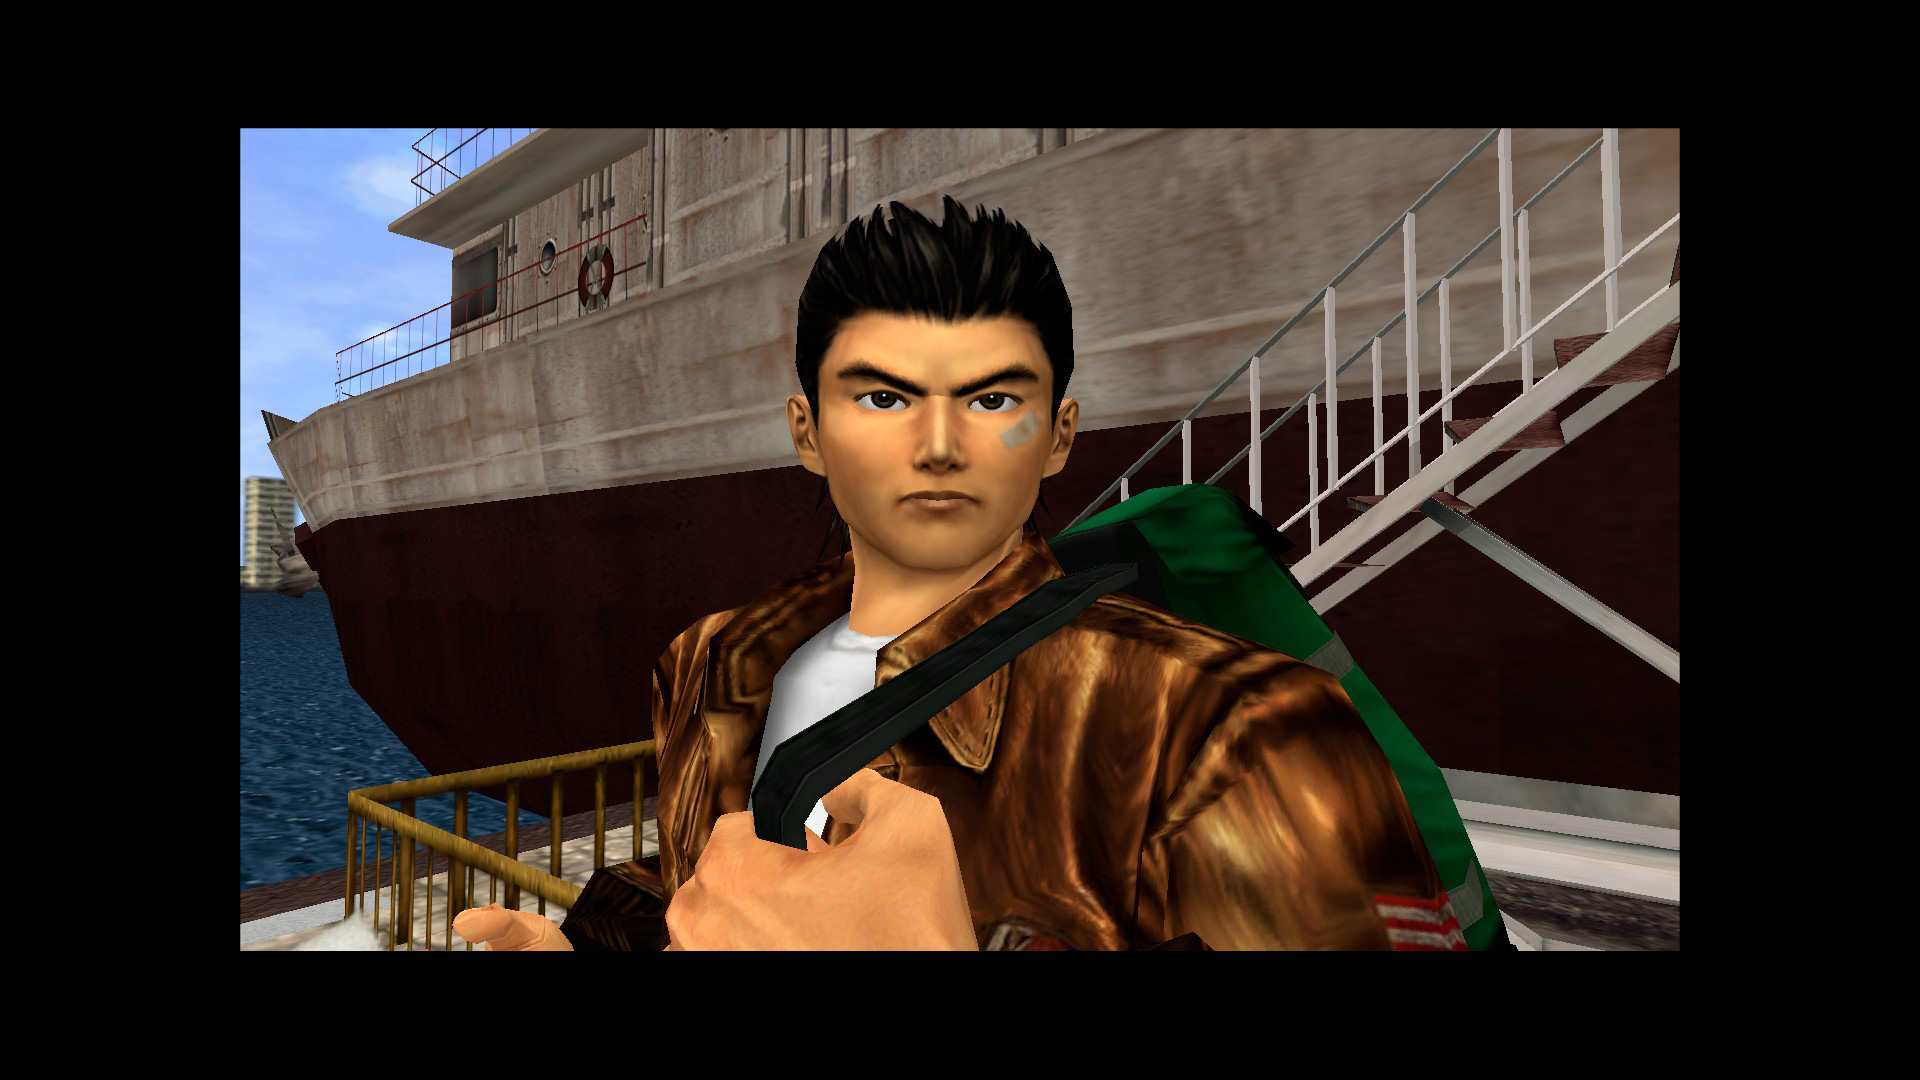 Shenmue I & II releases August 21 to PlayStation 4, Xbox One